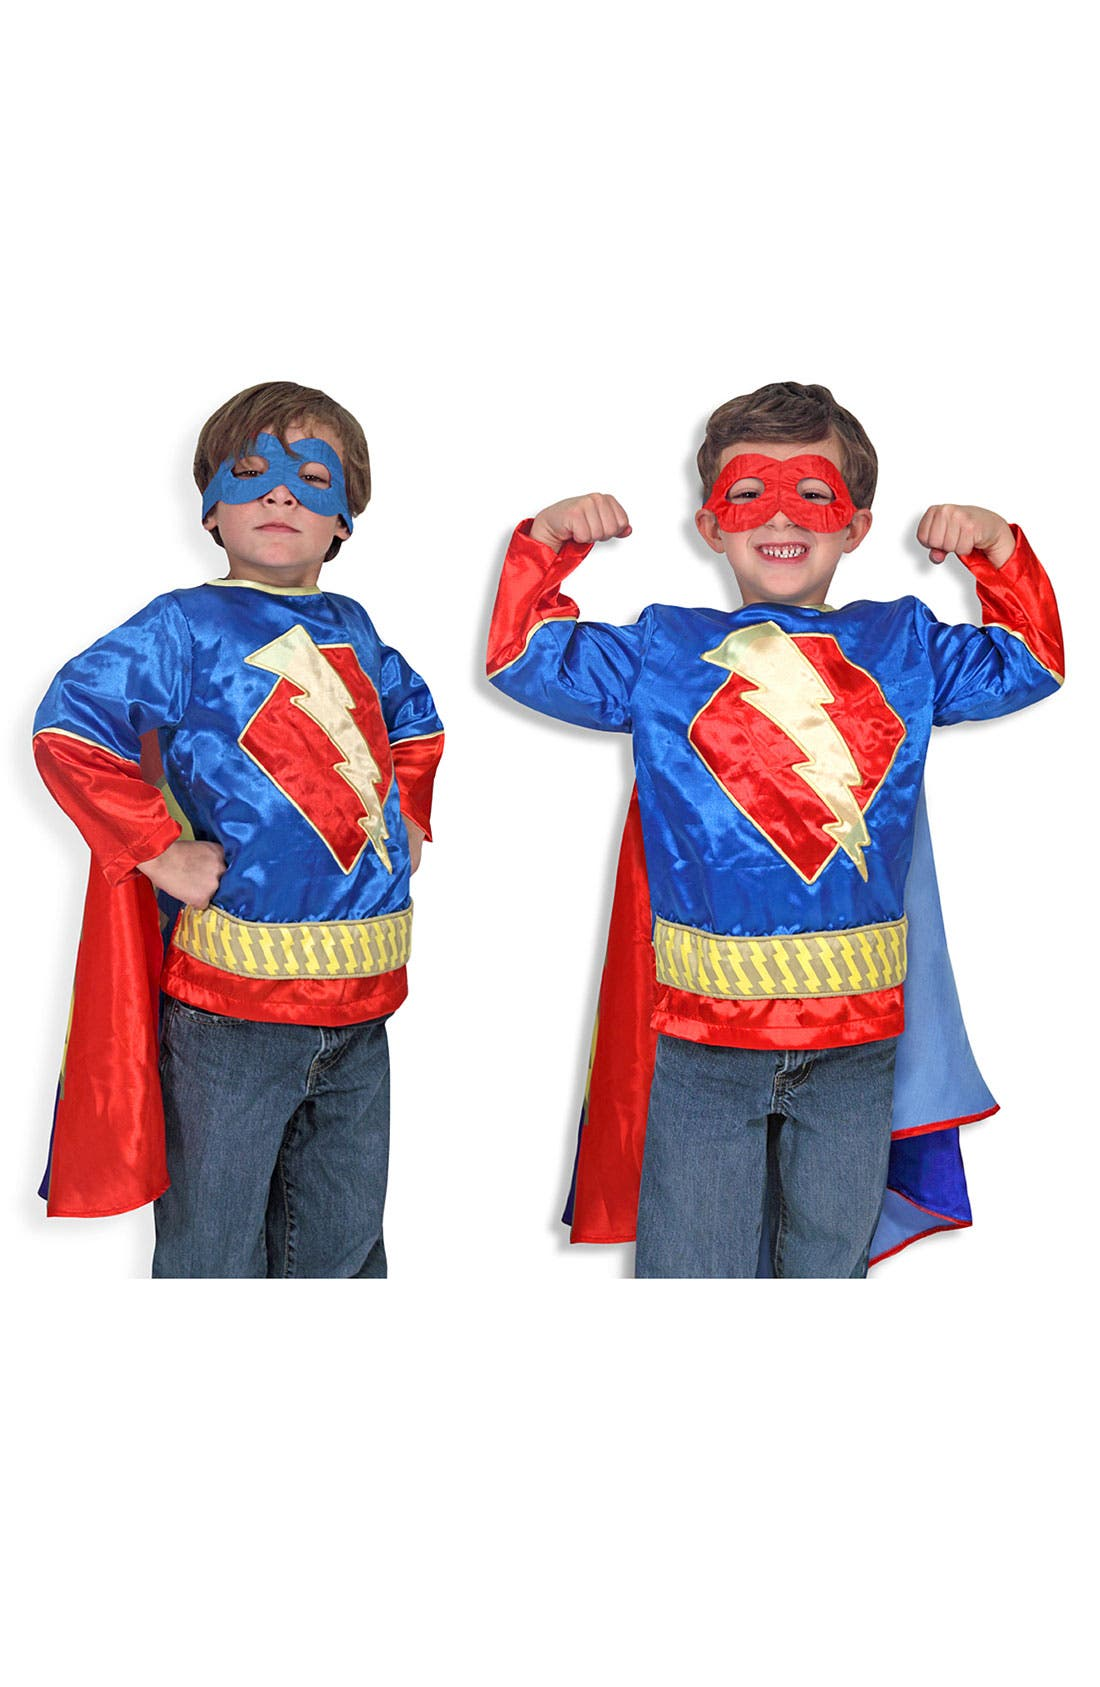 Alternate Image 1 Selected - Melissa & Doug 'Superhero' Costume (Toddler)